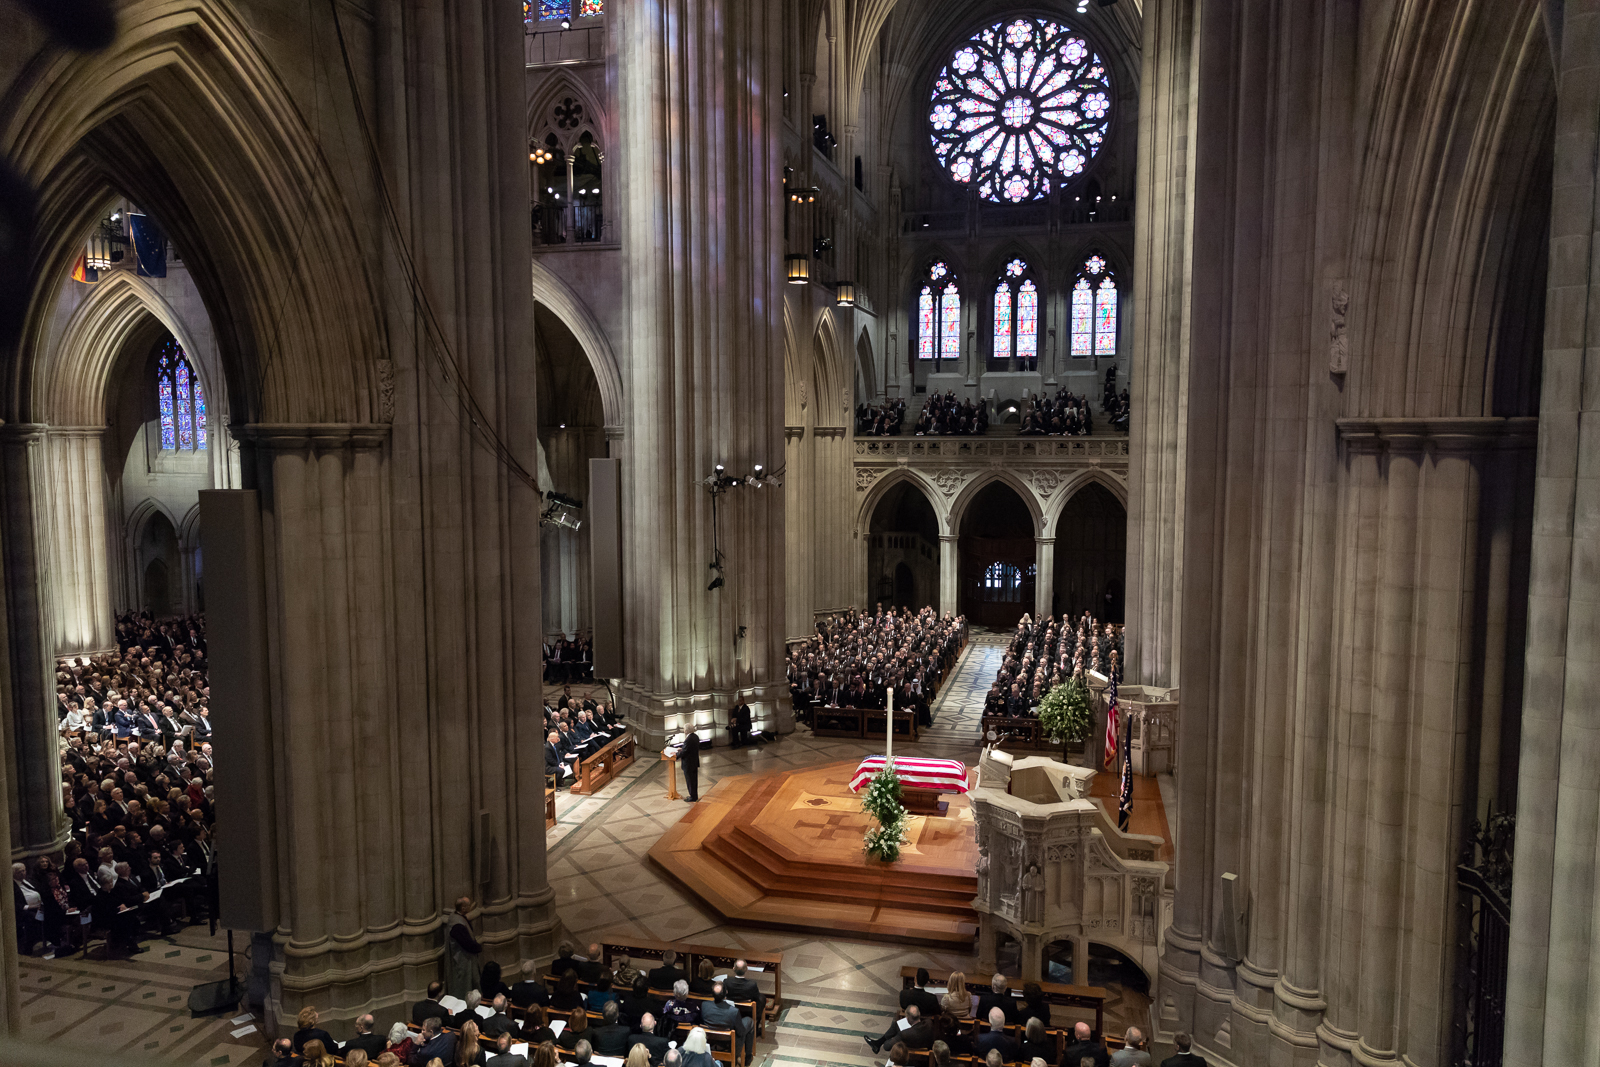 Bush's state funeral inside the National Cathedral. Photo via The White House.